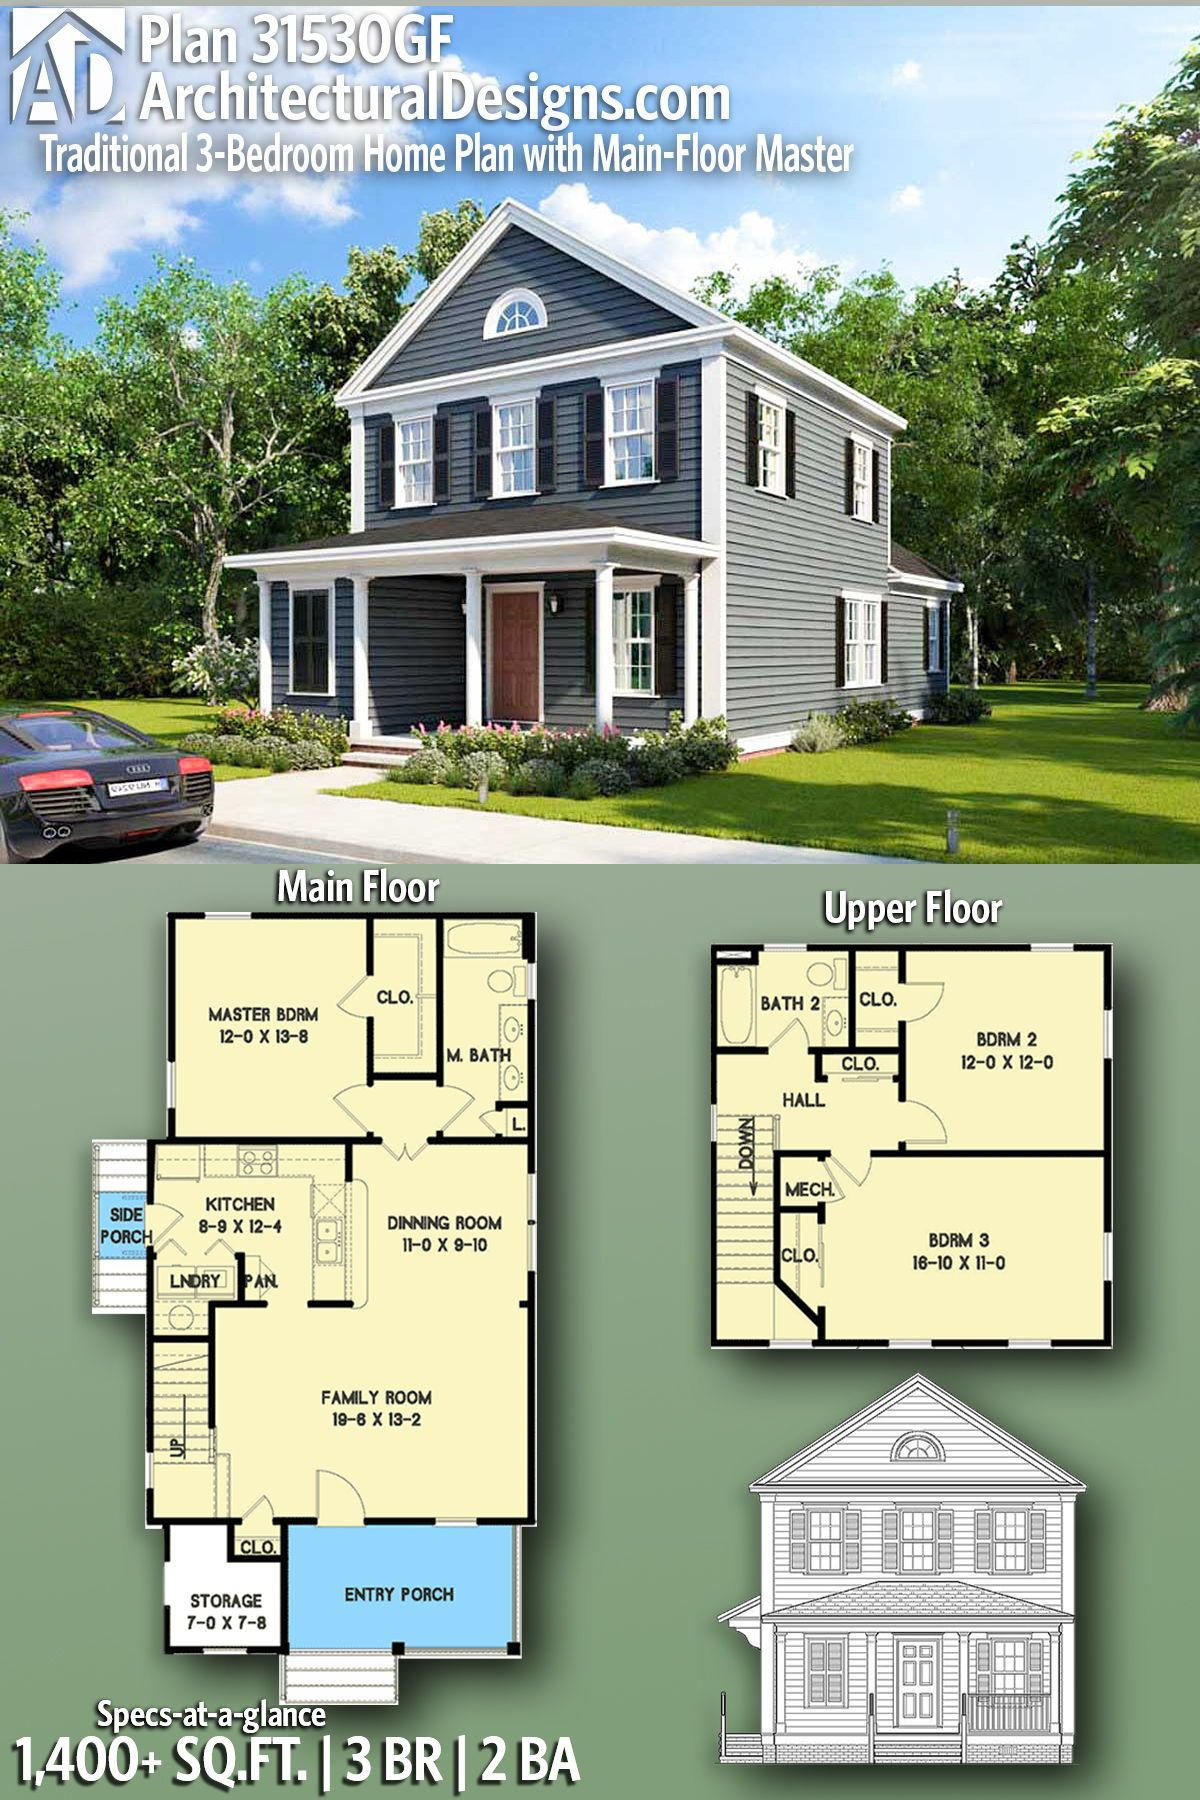 Plan 31530gf Traditional 3 Bedroom Home Plan With Main Floor